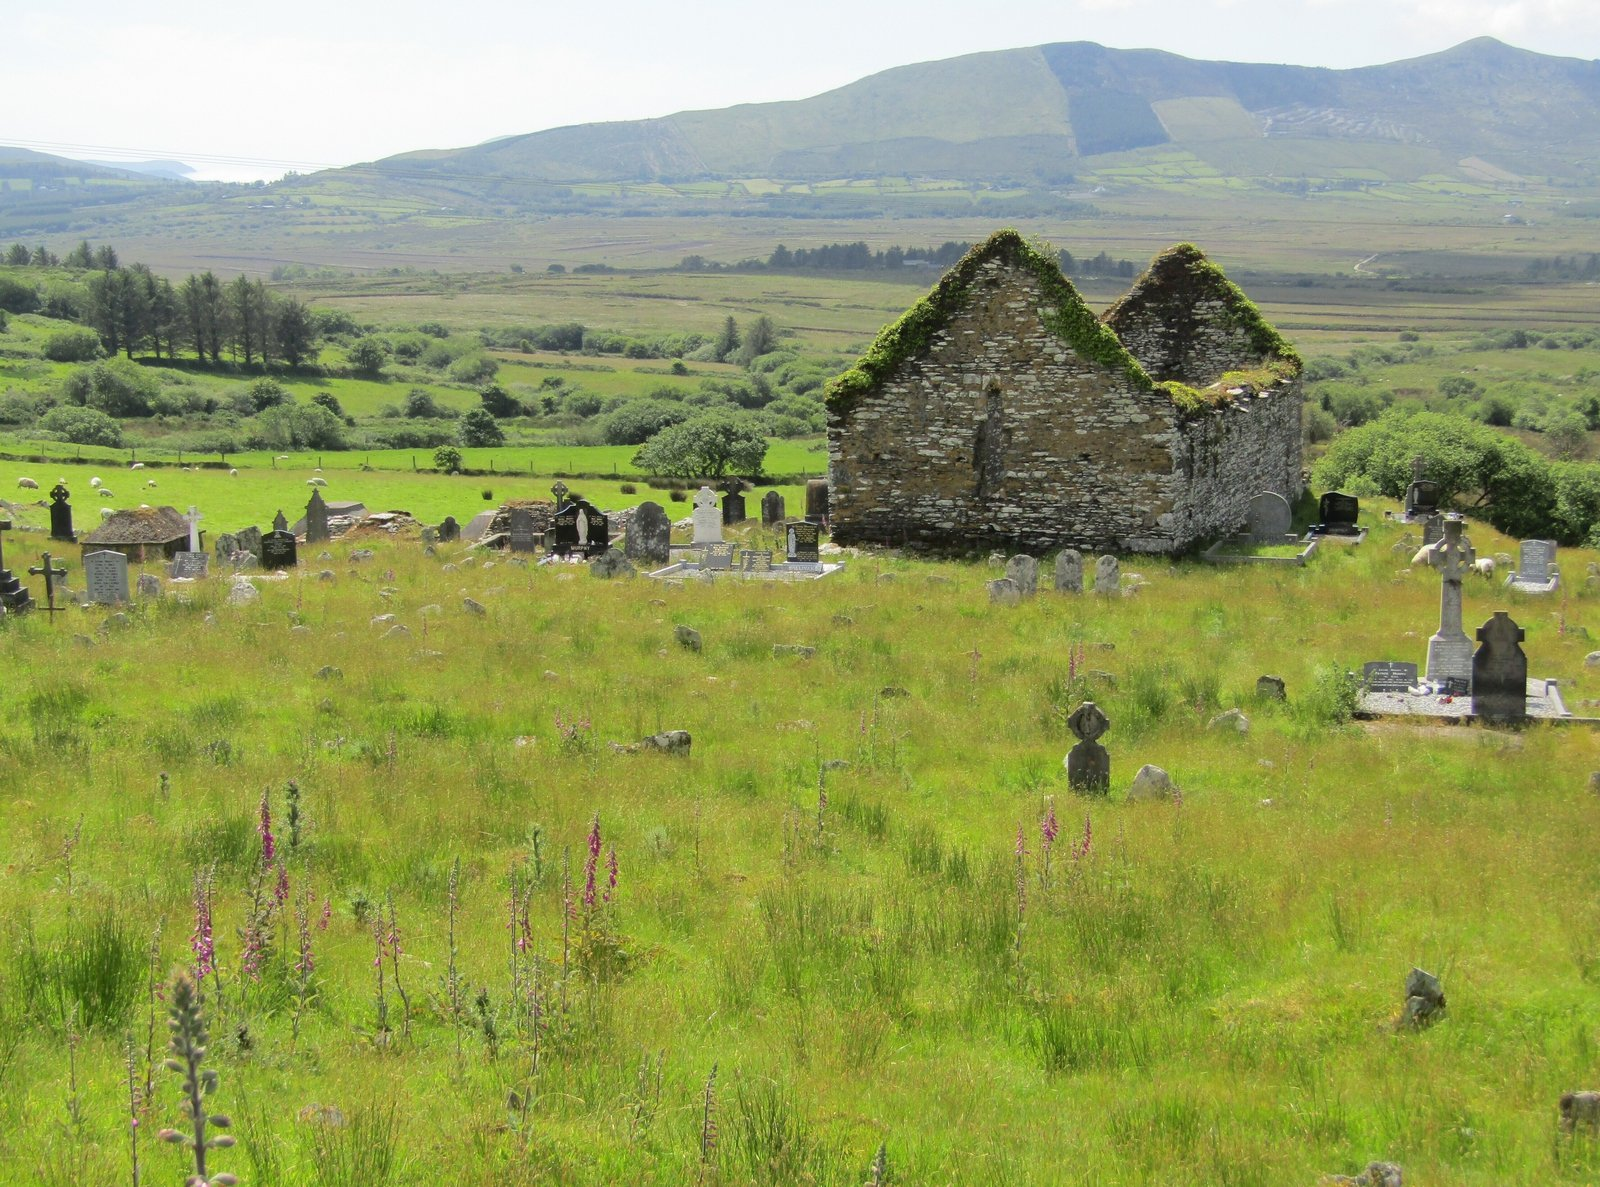 Image - Sugreana cemetery near Cahersiveen, Co. Kerry where many victims of starvation and disease were buried. [Photo: John Crowley]